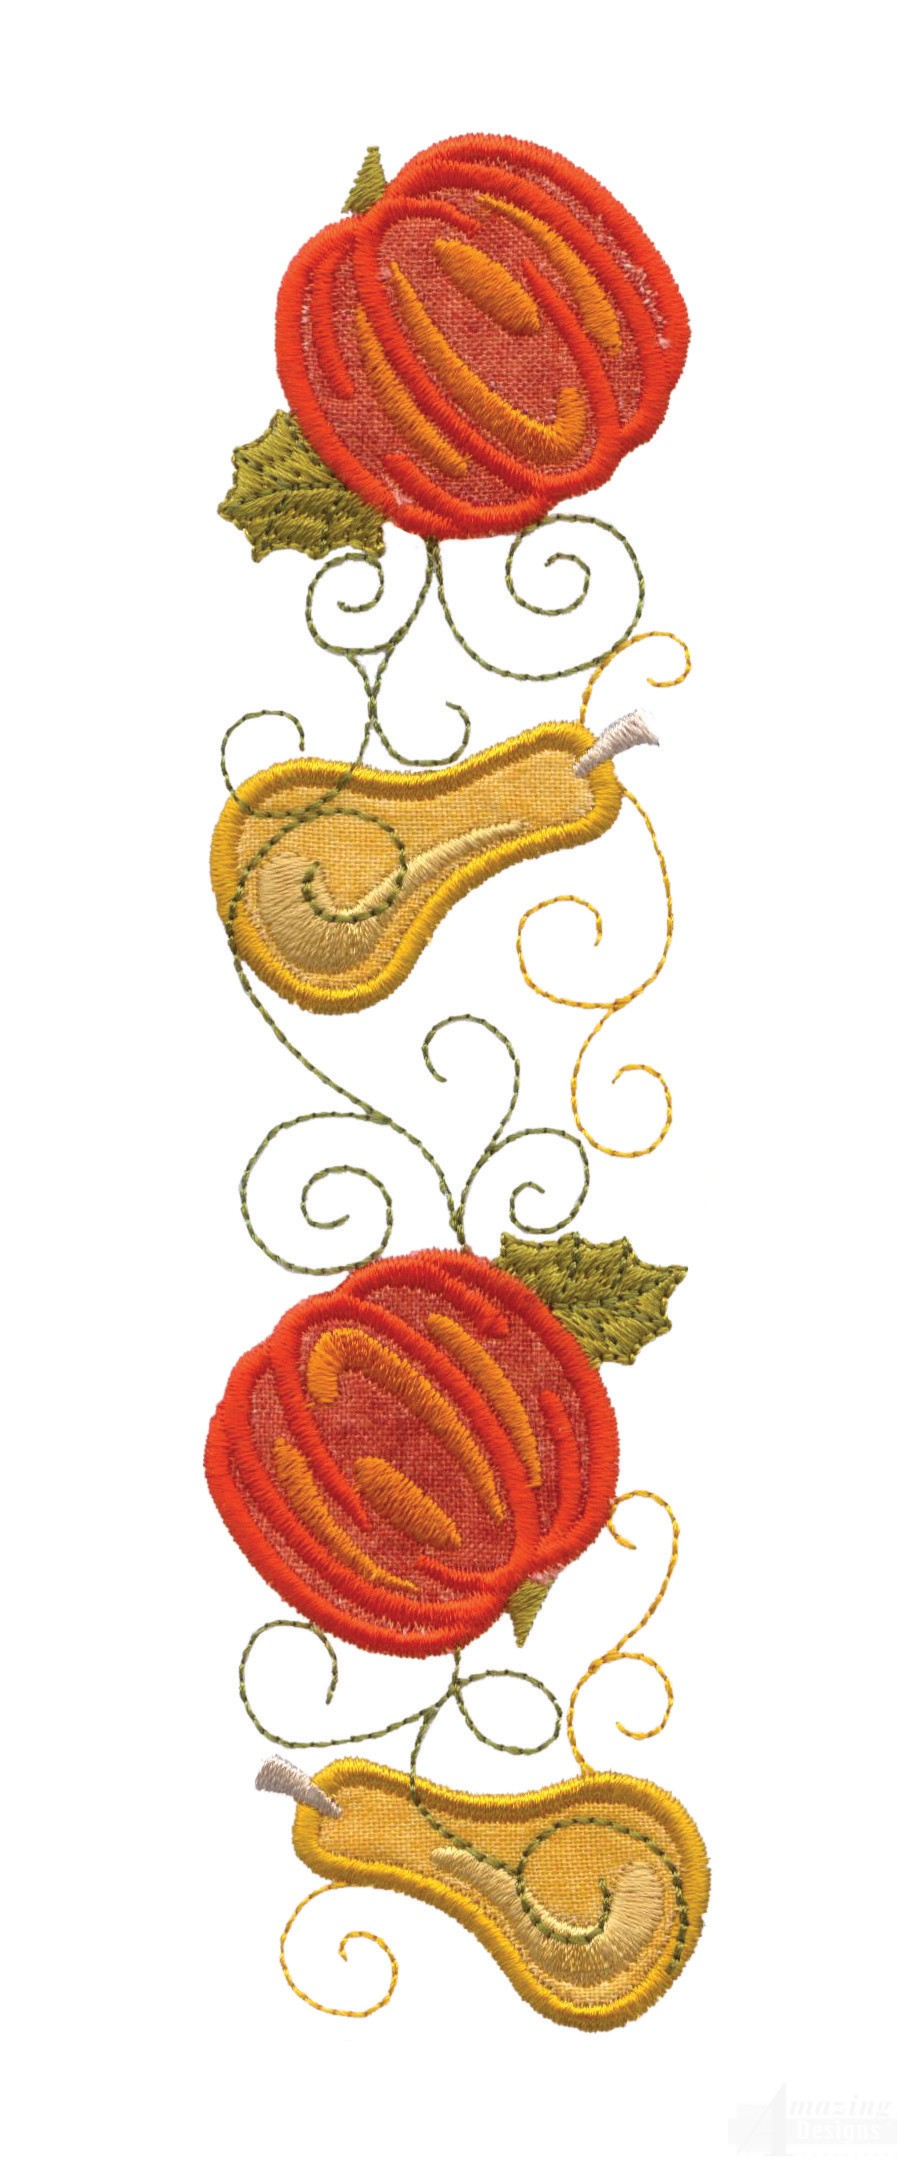 Pumpkin and squash applique embroidery design